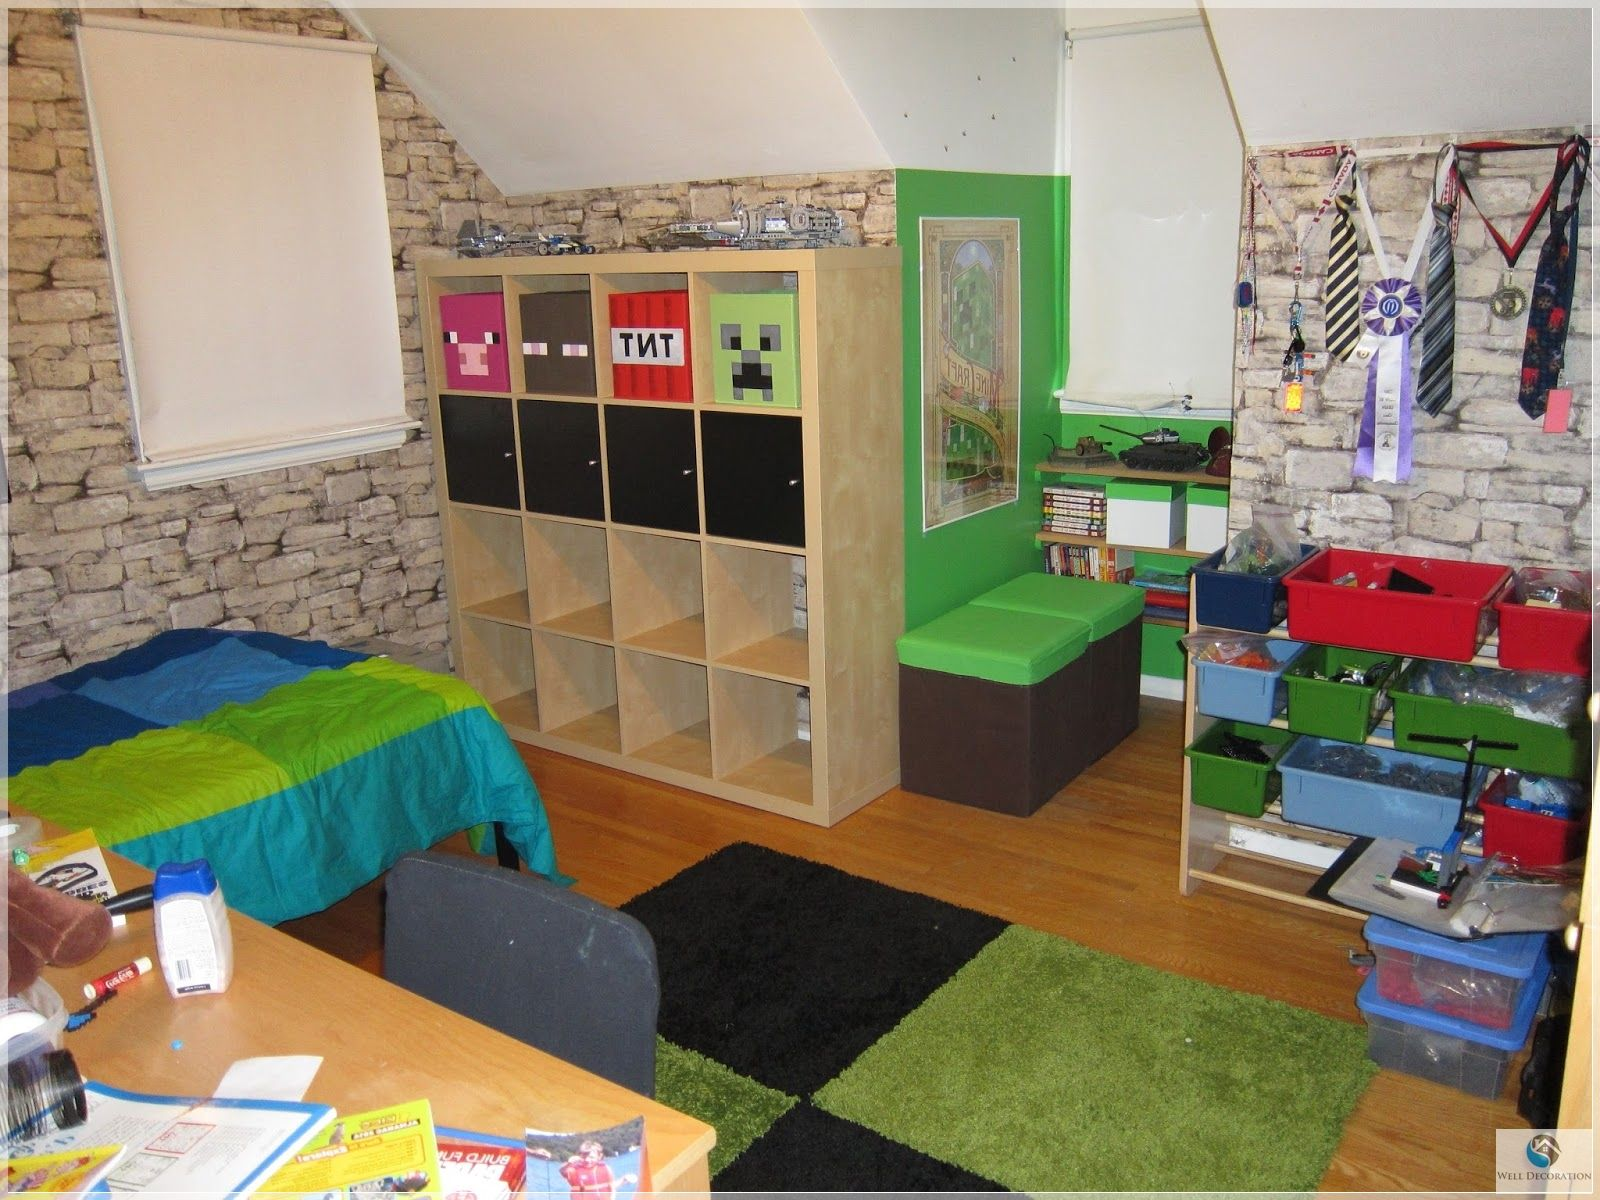 themed bedroom 3 Decorating Your Kid s Room With A Minecraft Theme Images. themed bedroom 3 Decorating Your Kid s Room With A Minecraft Theme